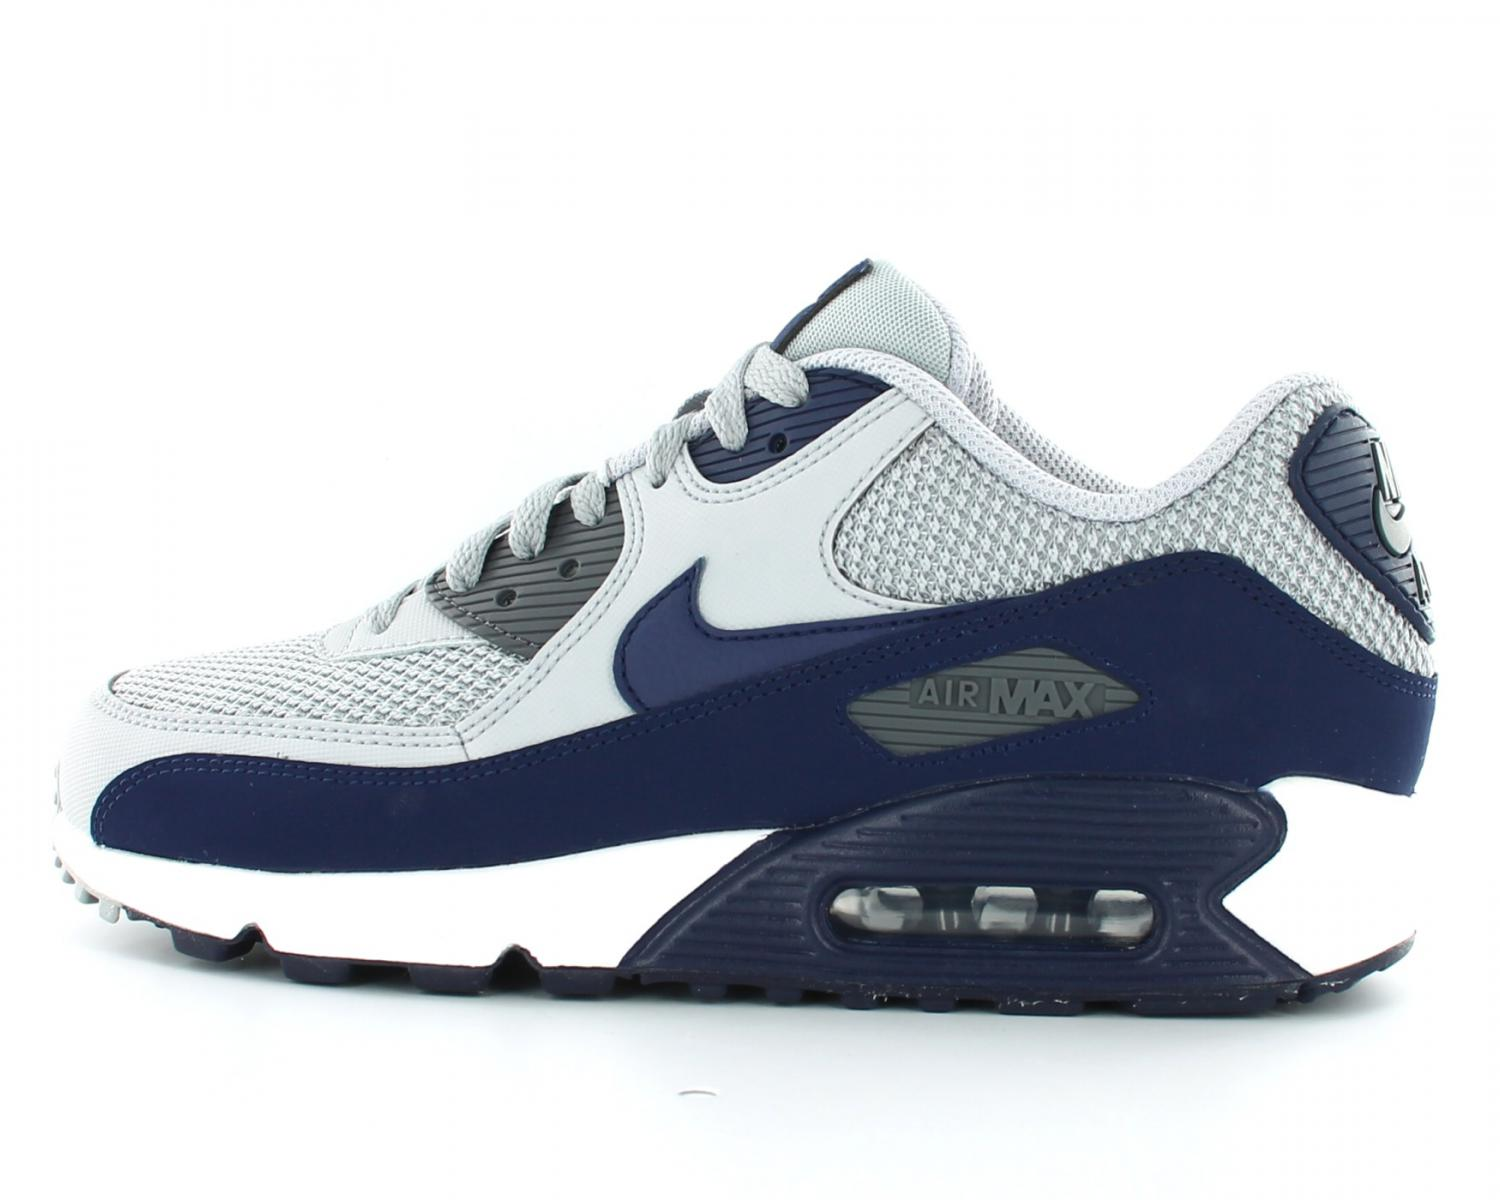 pretty nice a2b93 1d01b Chaussures Nike Air Max 90 Essential grise et bleue vue intérieure ... Nike  Air Max 90 Femme Blanche NG3600638 Soldes France Boutique HTF